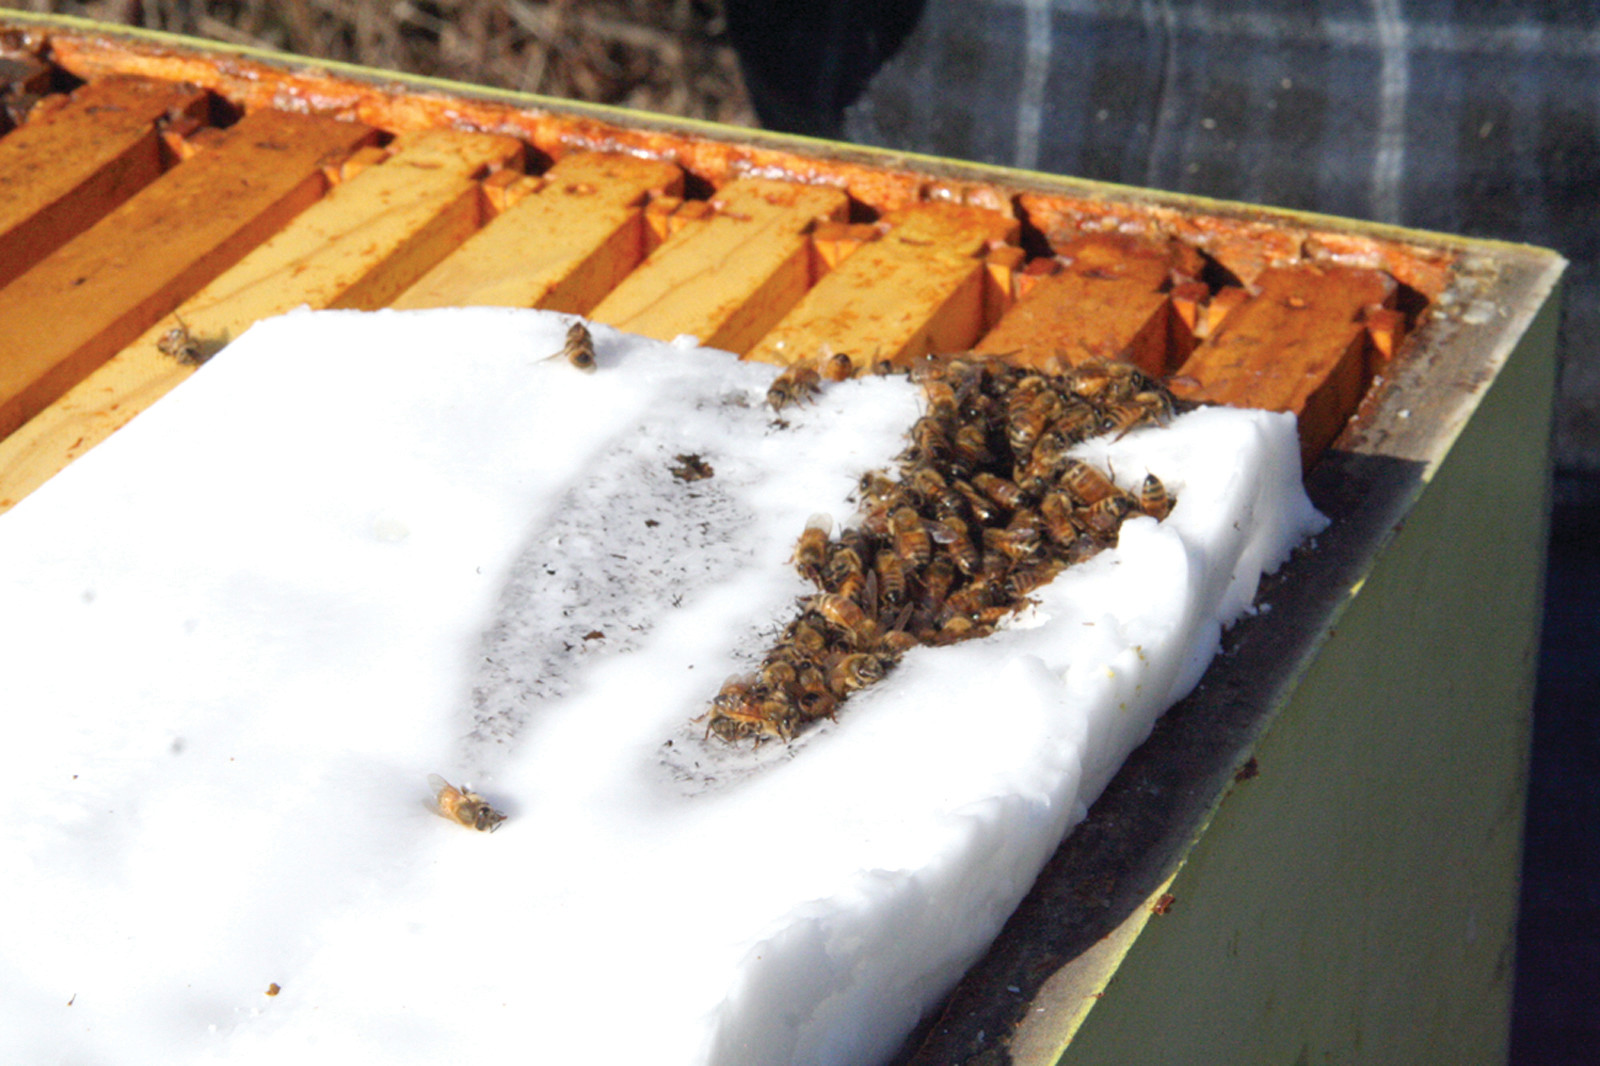 Bees eating the sugar left for them.